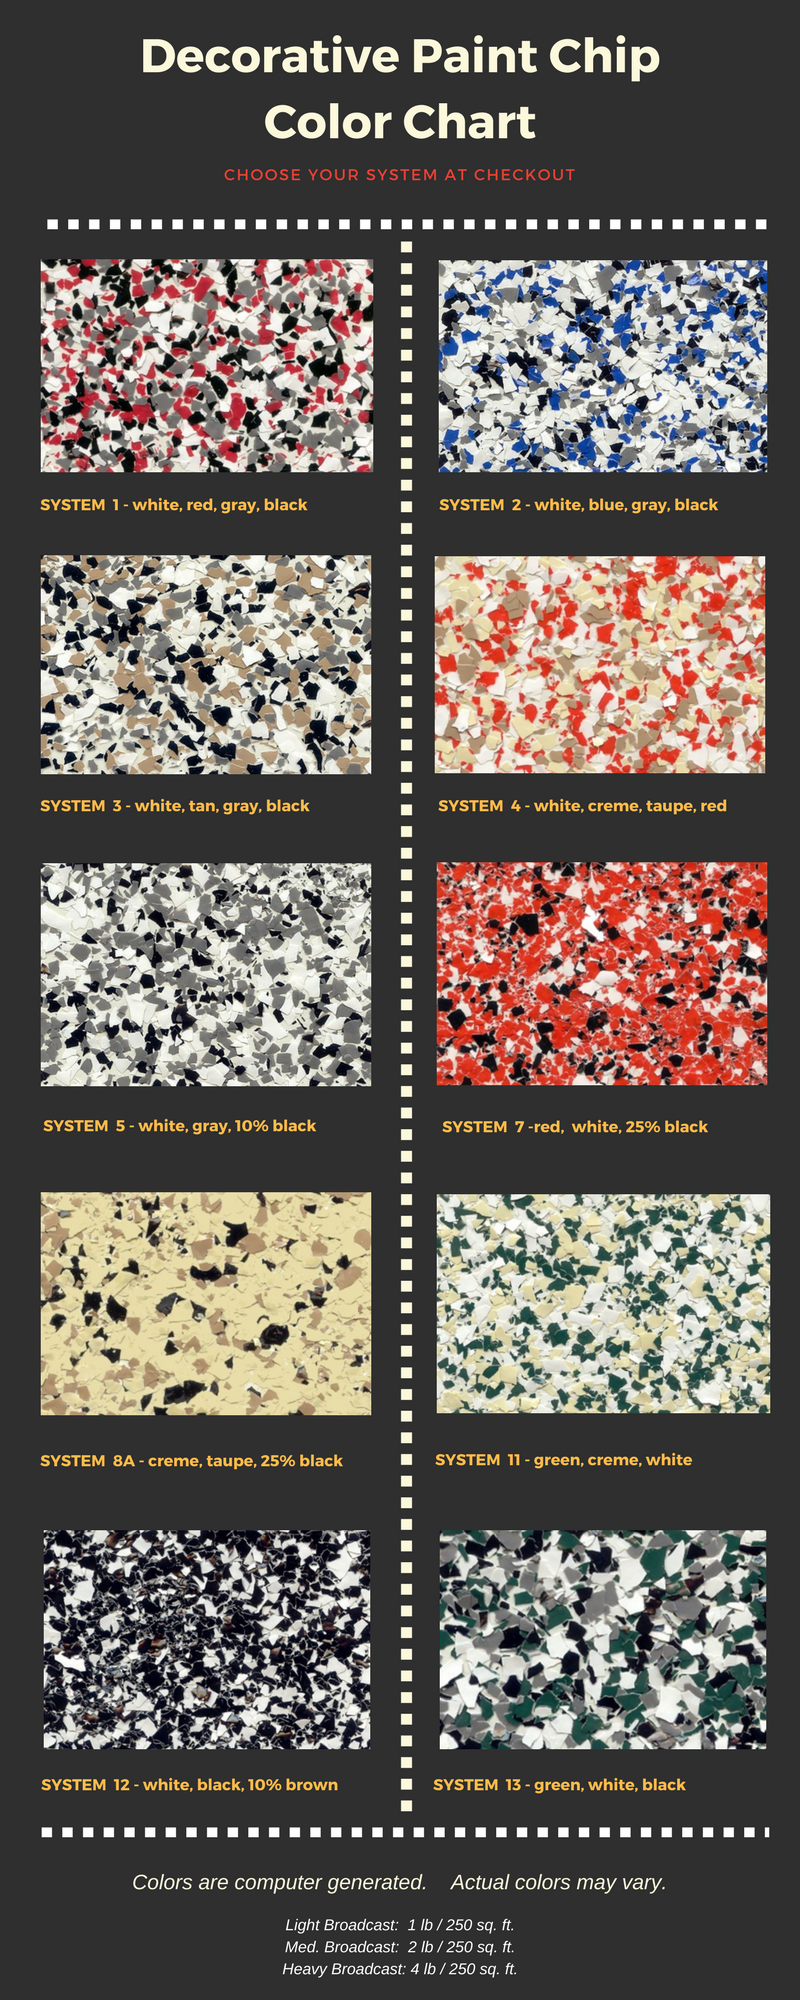 decorative-paint-chip-color-chart.png